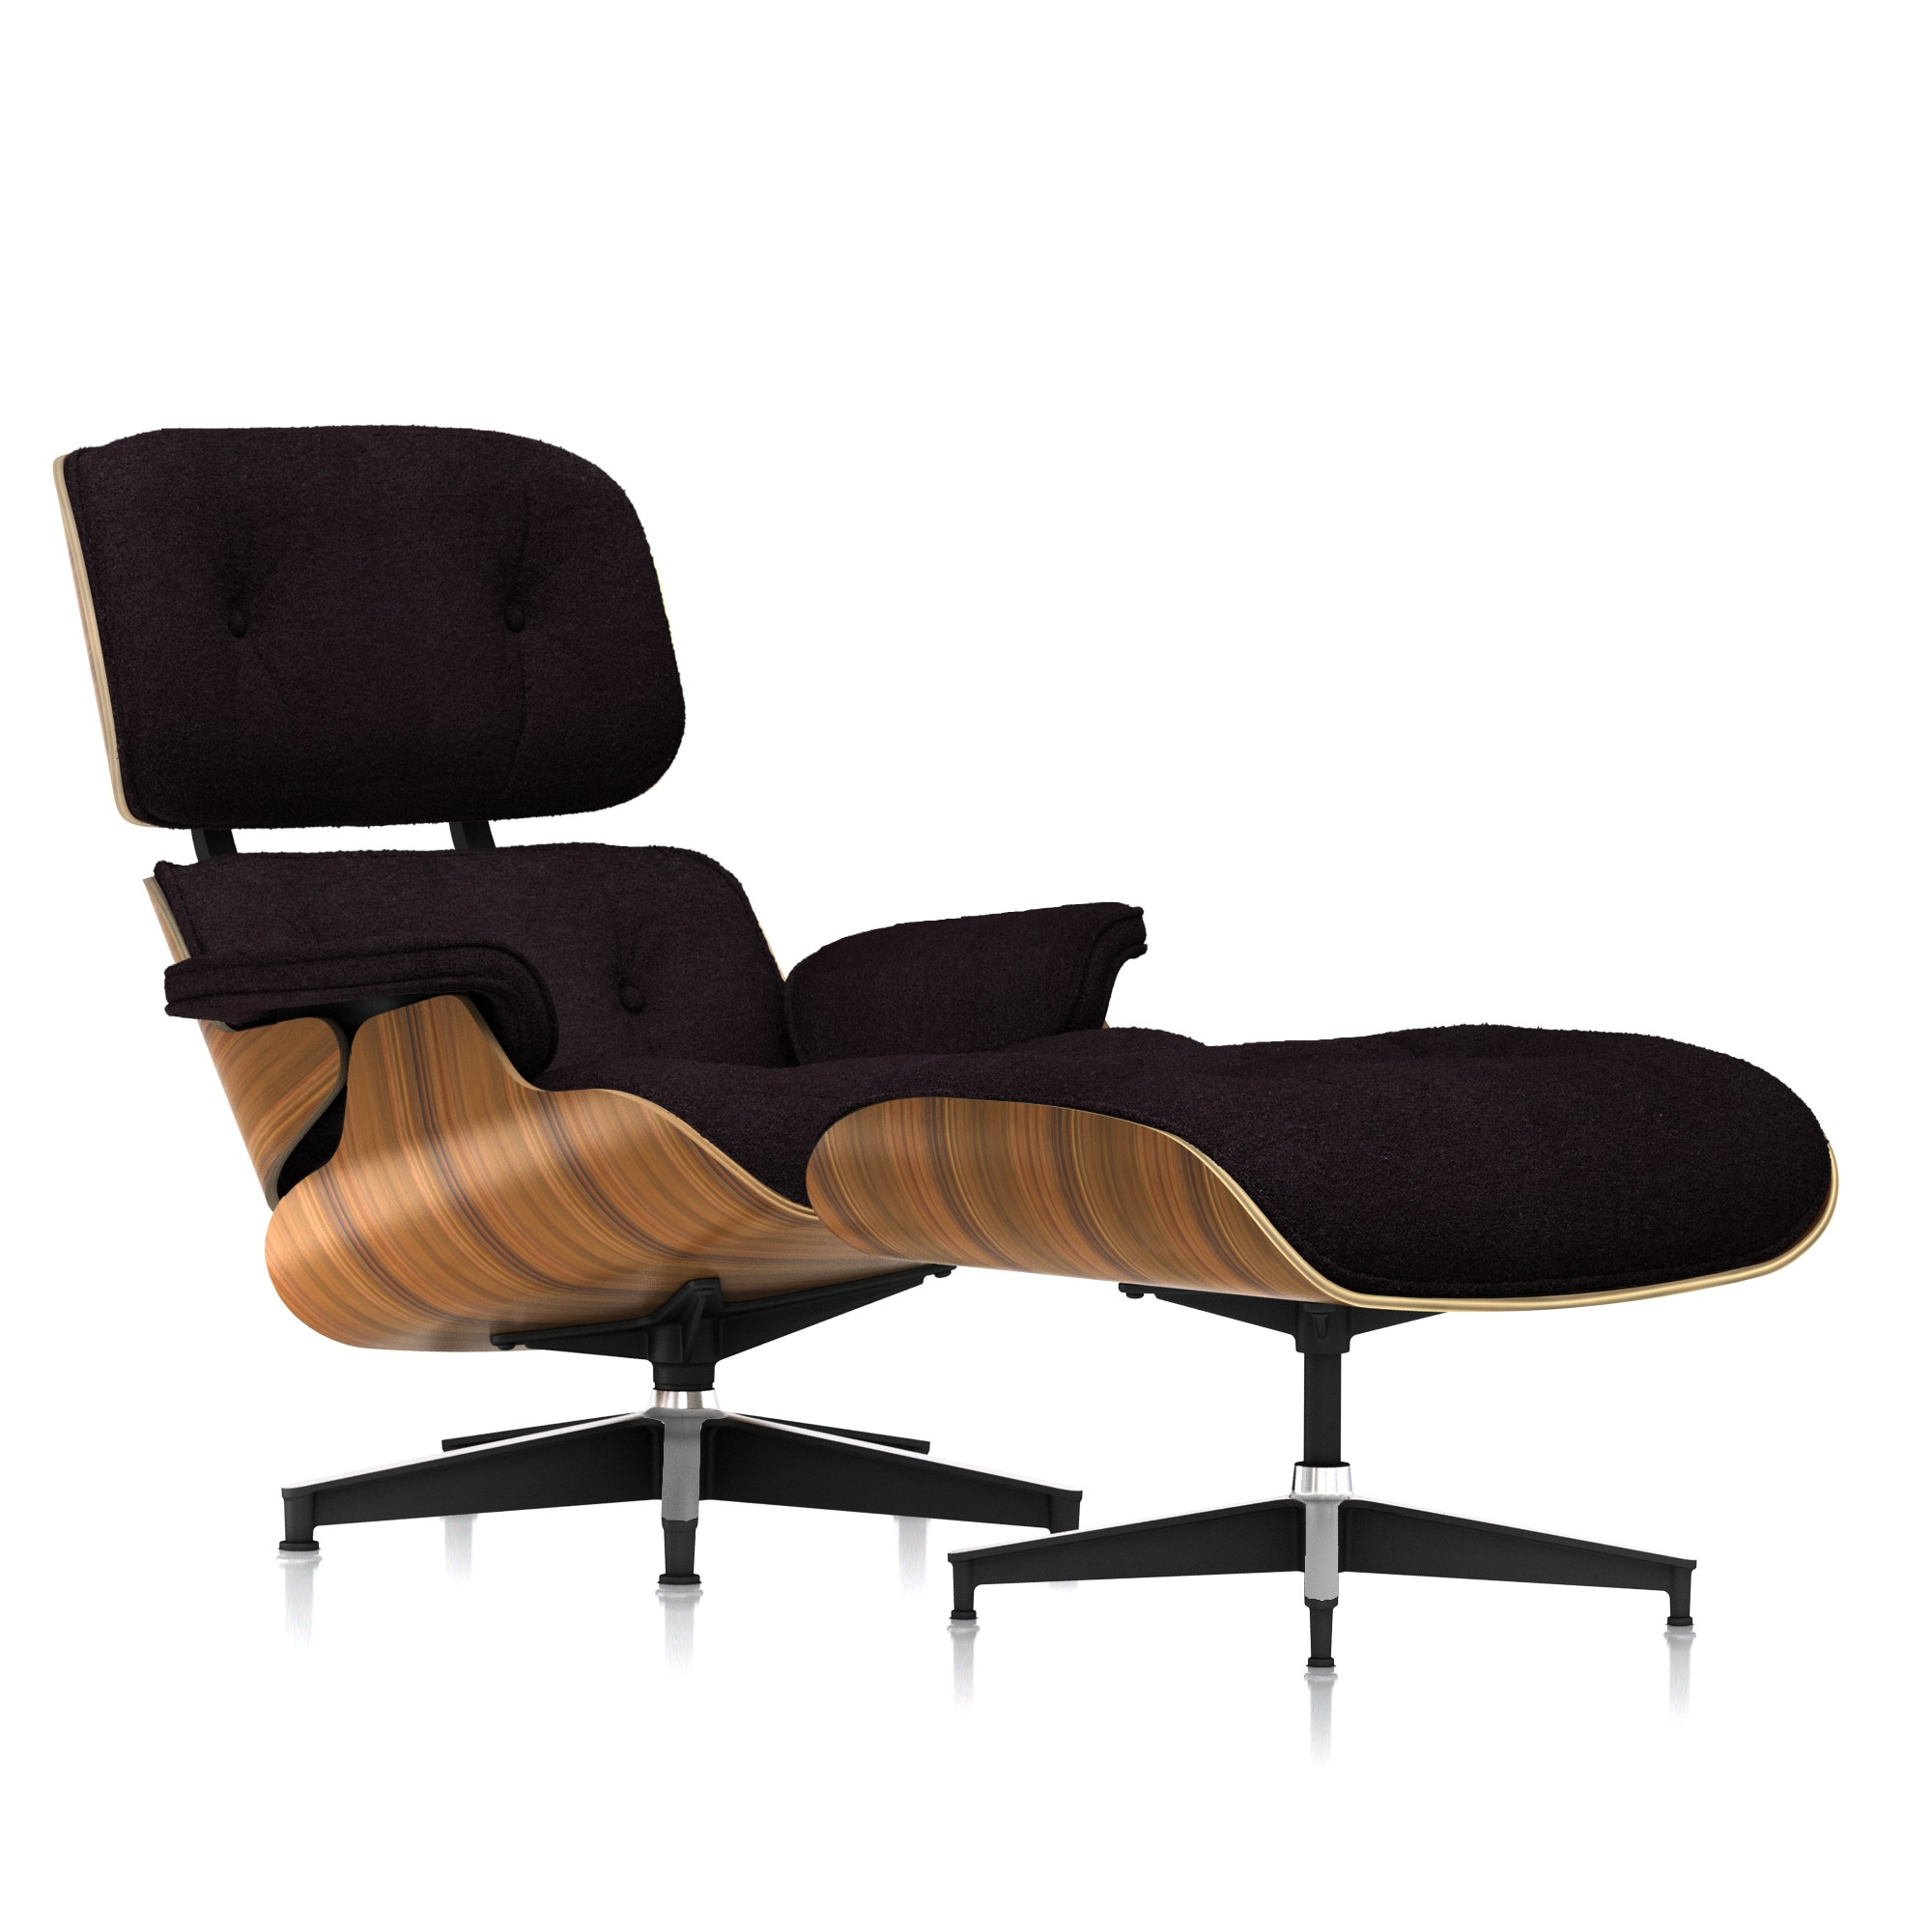 Eames Lounge Chair and Ottoman in Rich Chocolate Mohair Supreme Tall by Herman Miller